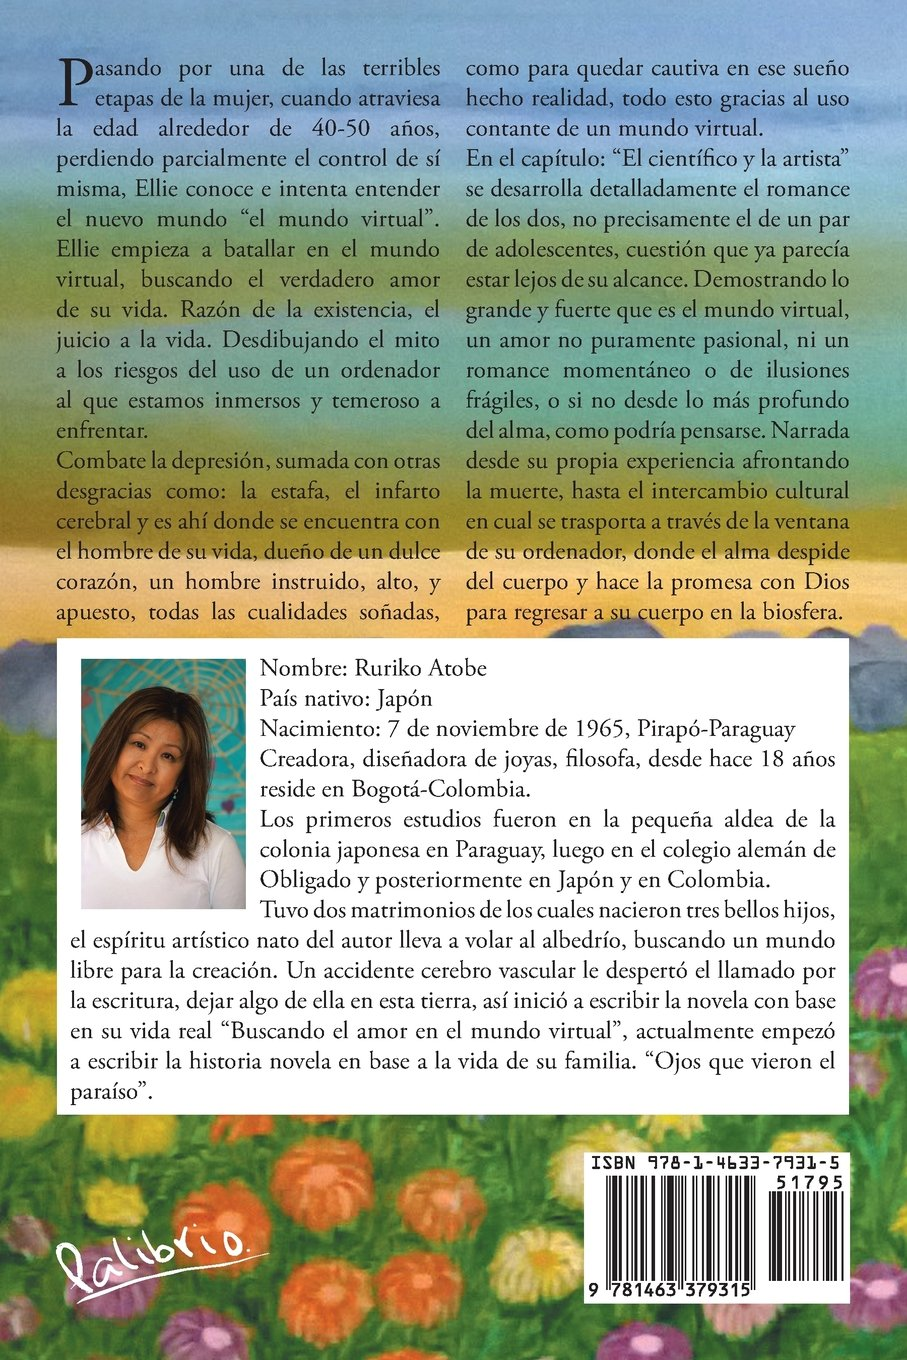 Buscando El Amor en El Mundo Virtual (Spanish Edition): Ruriko Atobe: 9781463379315: Amazon.com: Books